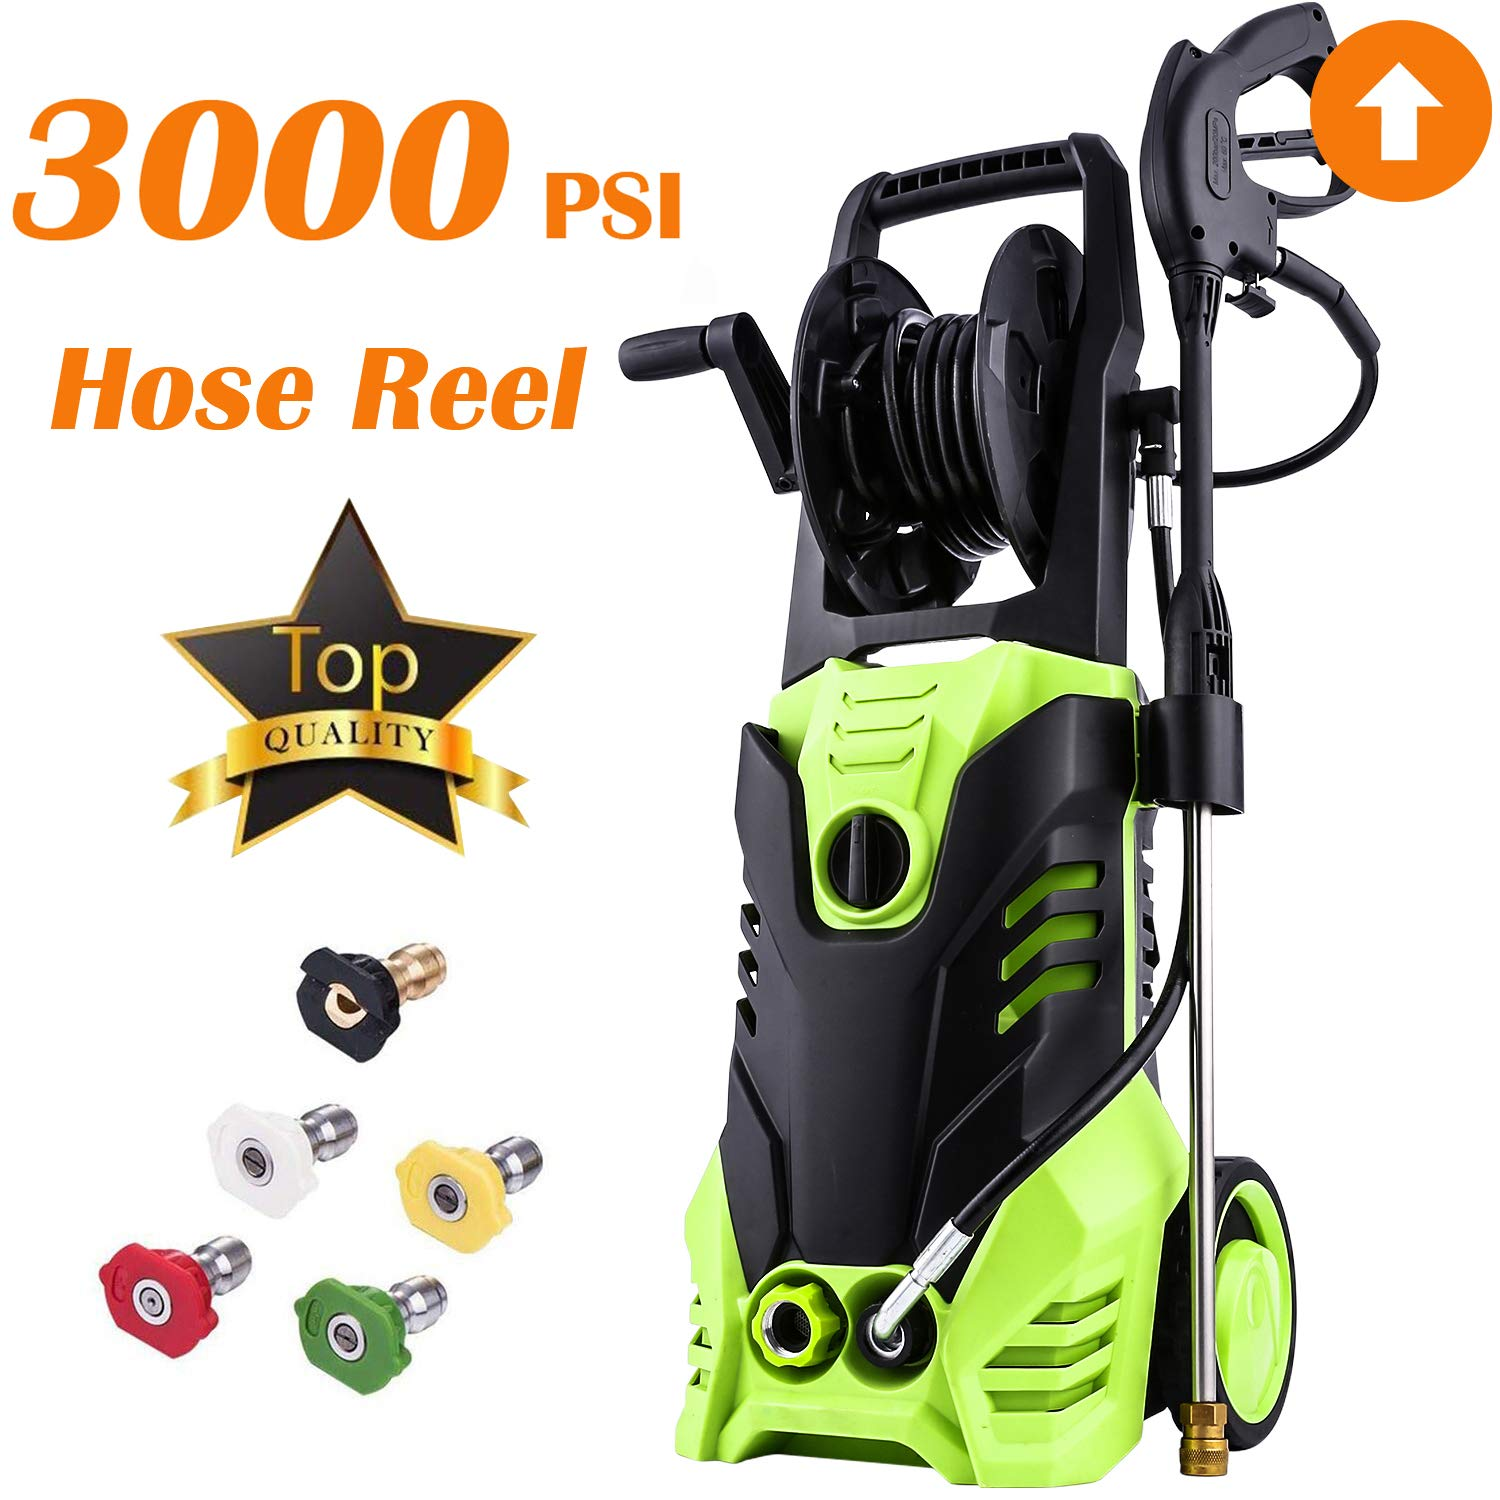 Electric High Pressure Washer 3000PSI 1.8GPM Power Pressure Washer Machine with Power Hose Gun Turbo Wand 5 Interchangeable Nozzles